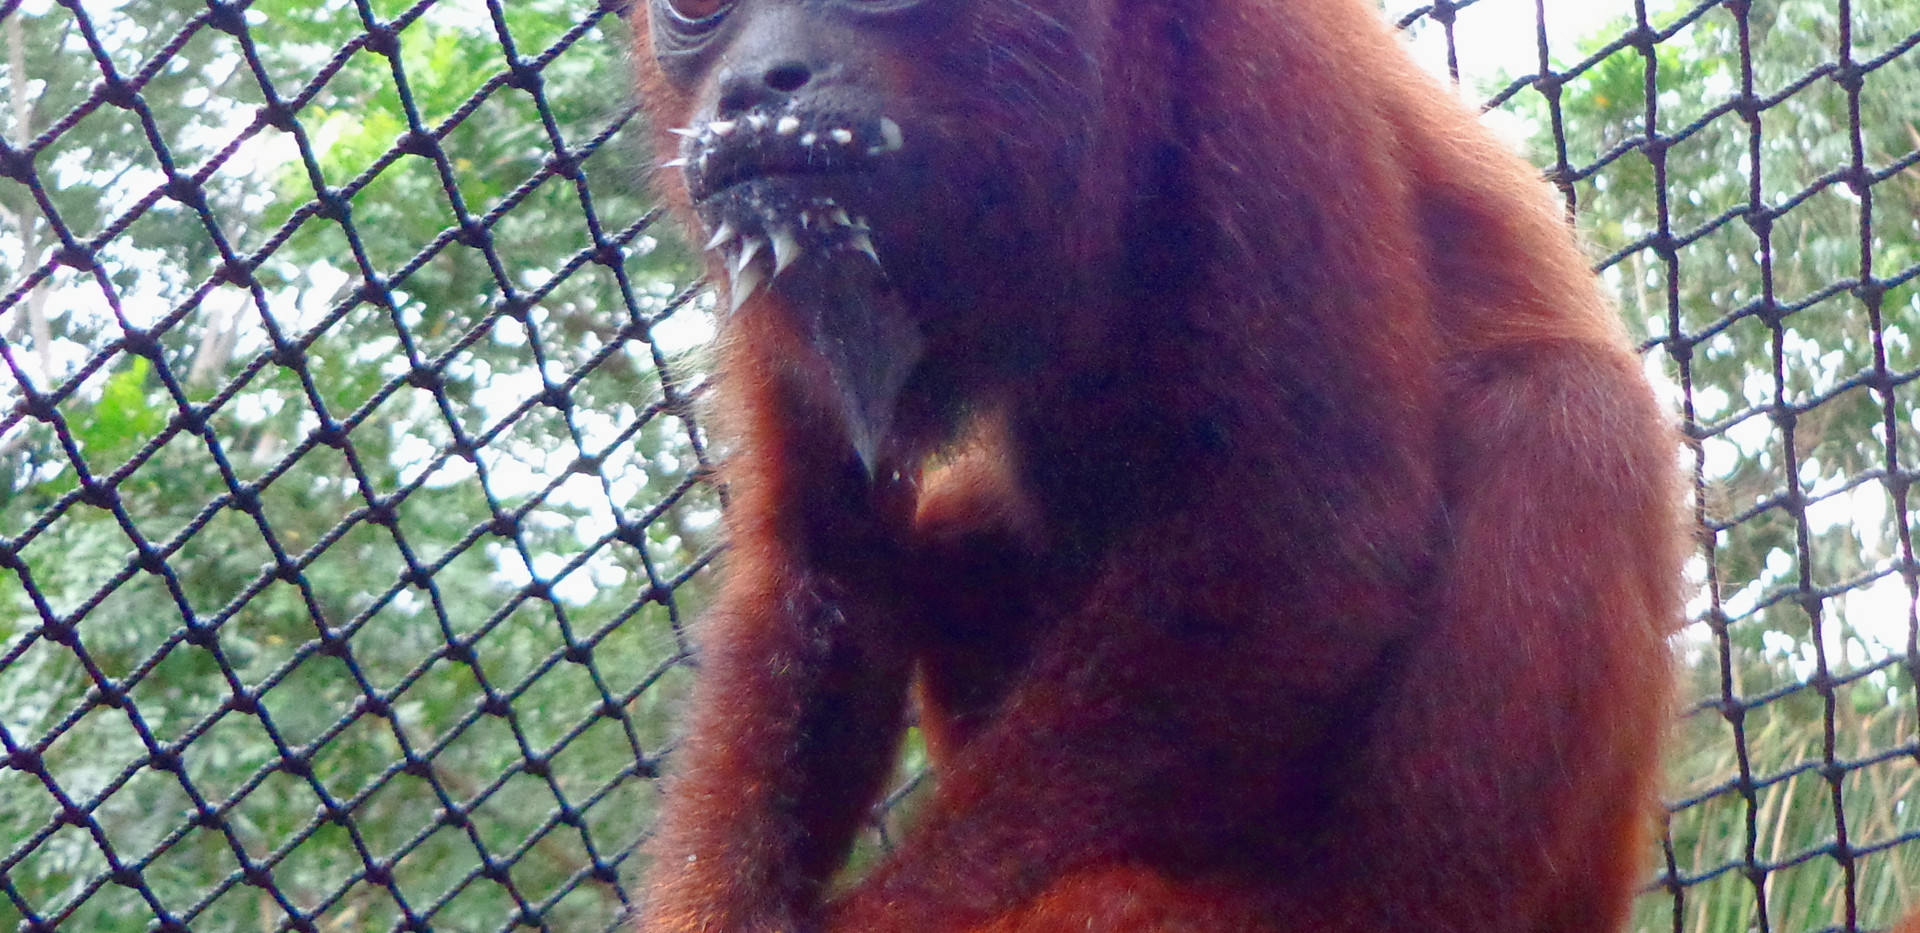 A young howler monkey (Alouatta seniculus) with fresh milk still clinging to his lips (Photo: Magali Salinas)